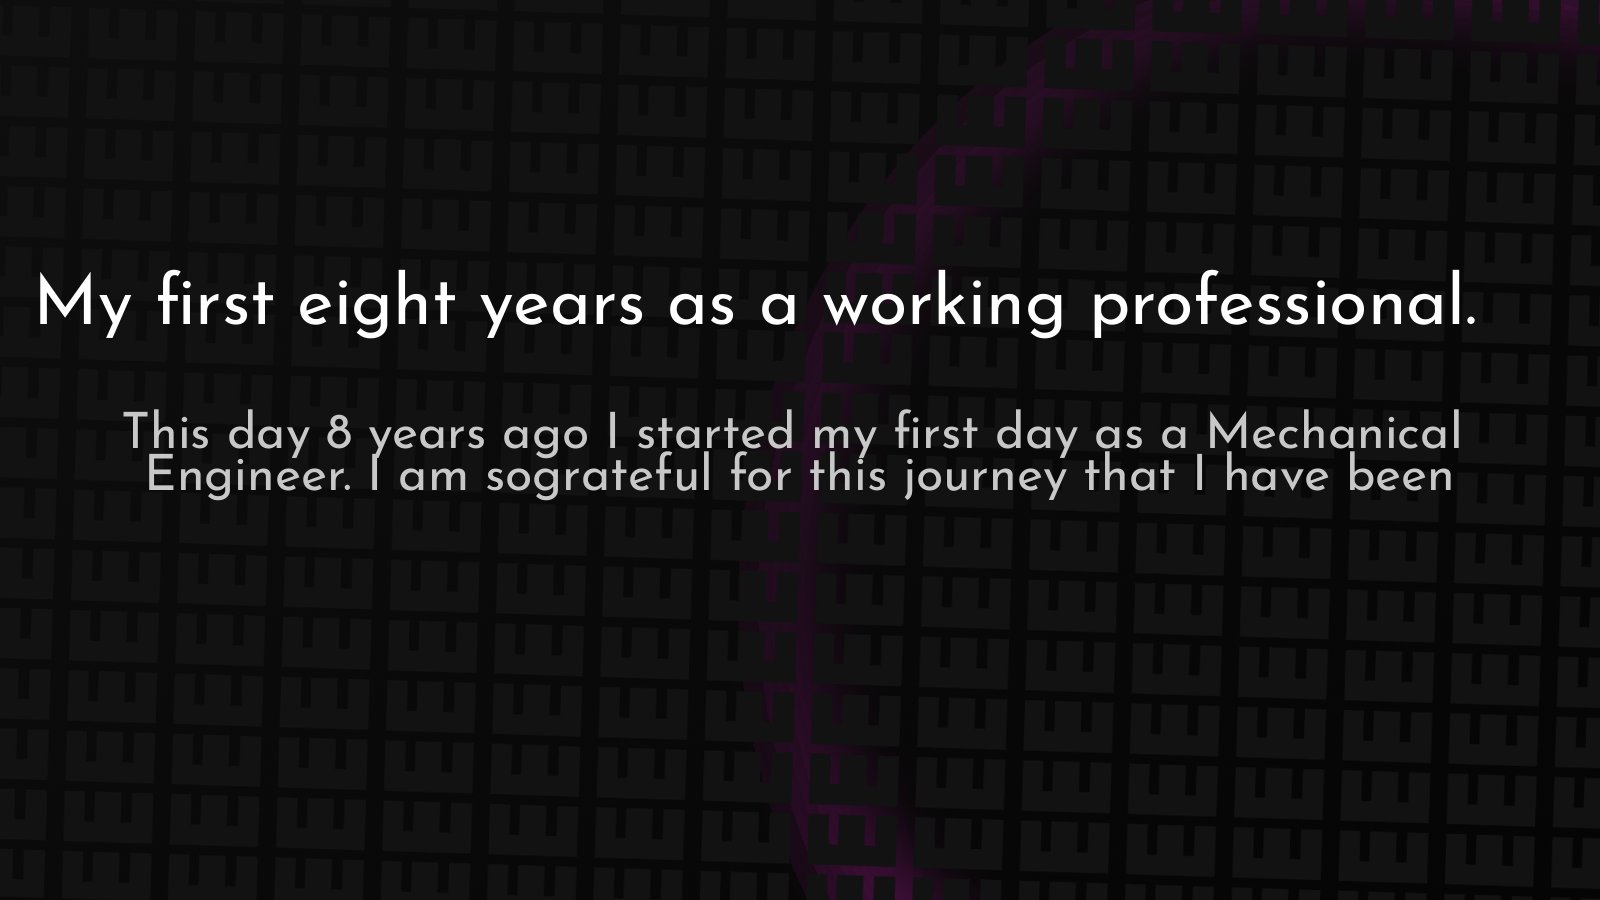 My first eight years as a working professional article